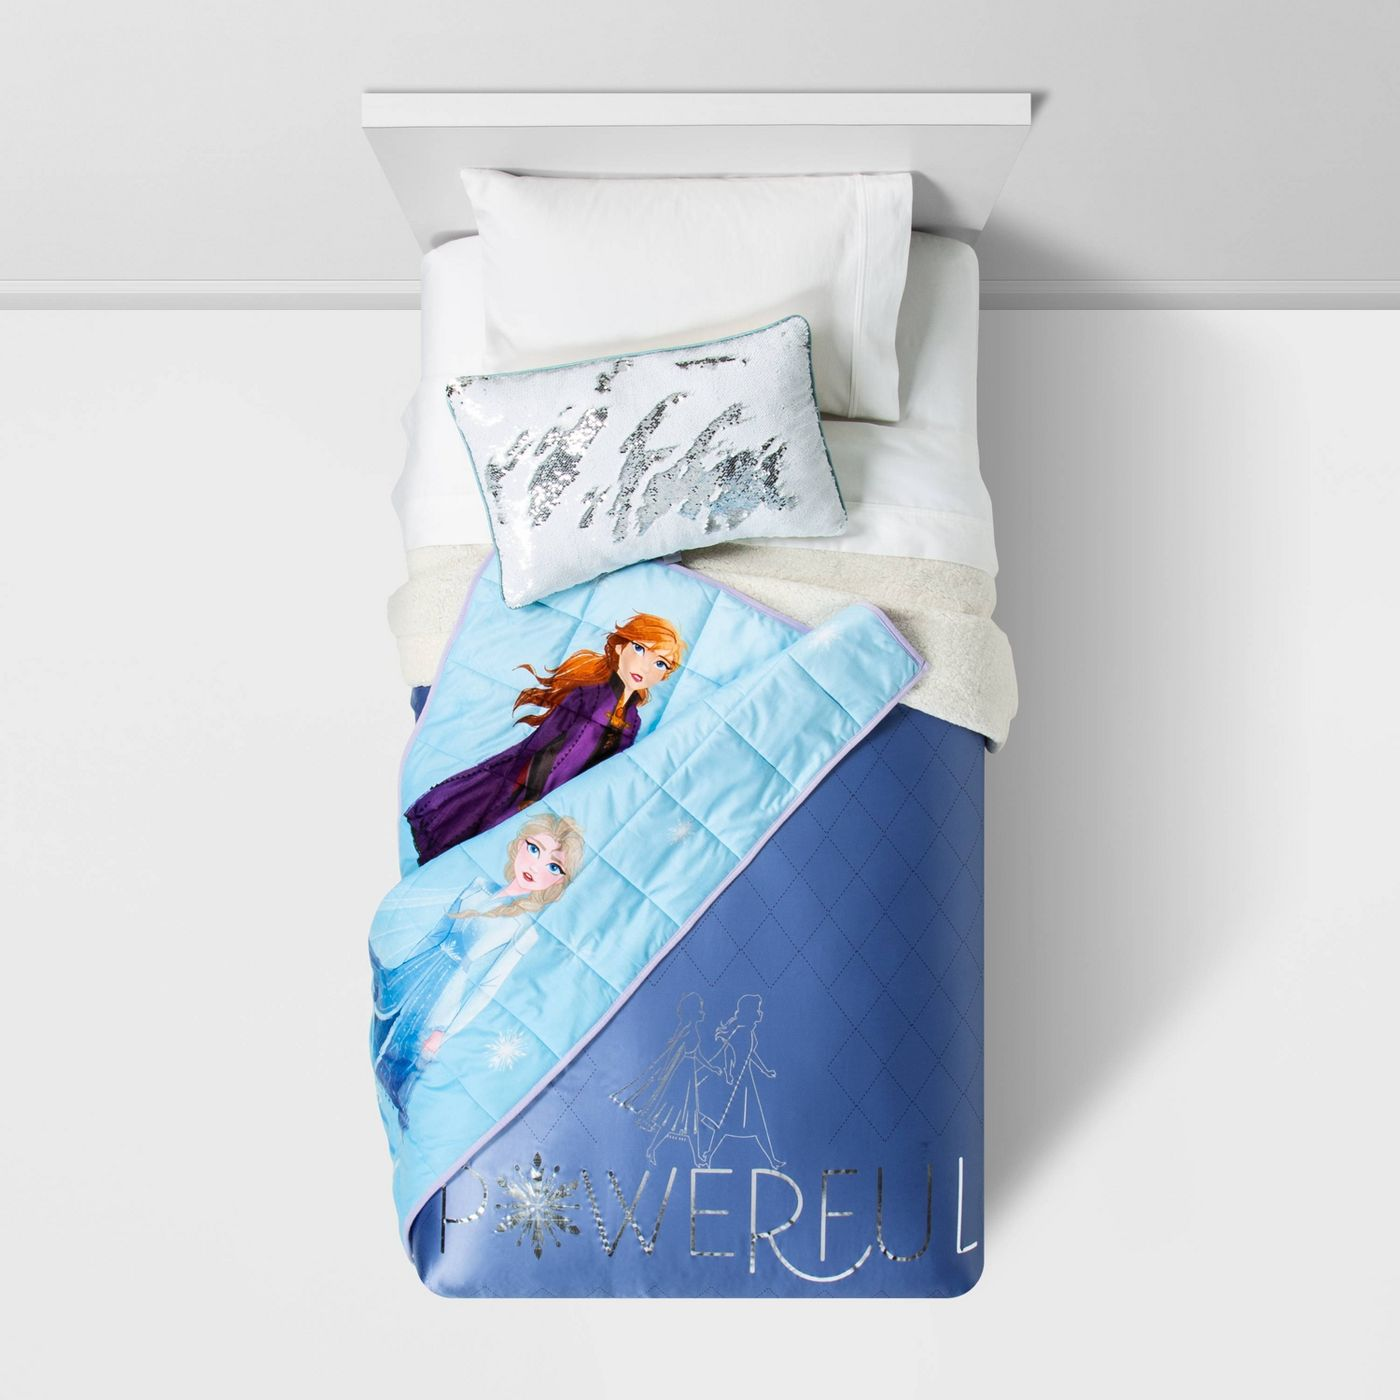 Frozen 2 kids weighted blanket on bed